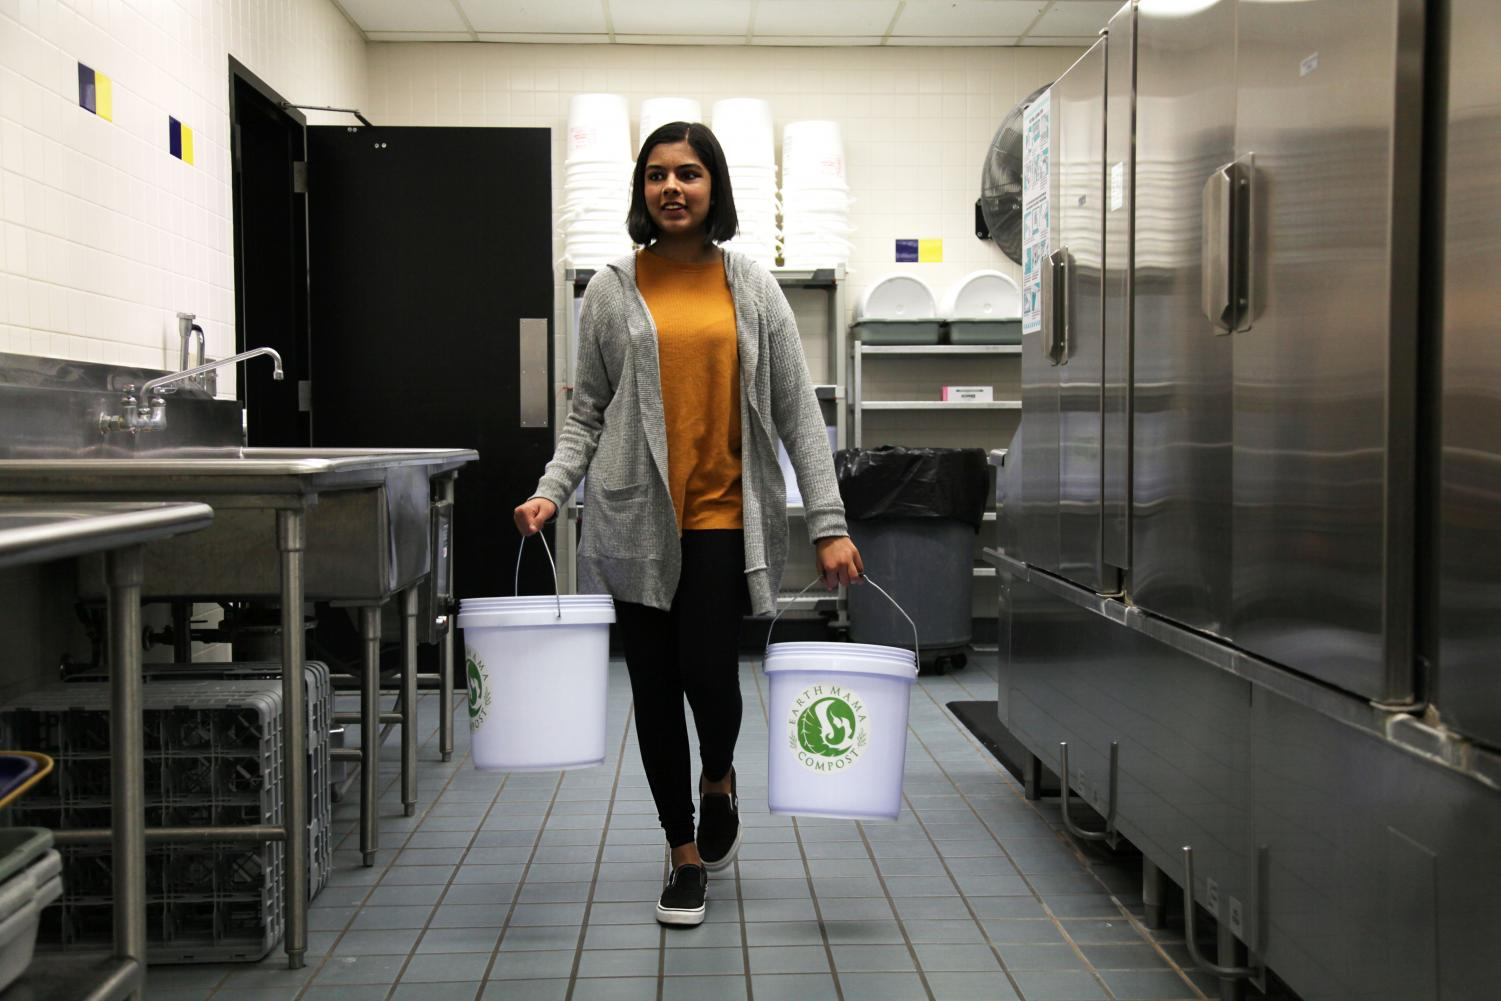 COMPOST QUEEN: Maanya Rajesh, co-leader of Green Action Club and sophomore, carries buckets of compost materials to add to her compost pile. Rajesh said she created Green Action club because she really cares about the environment and wants to bring awareness to saving the planet at CHS.